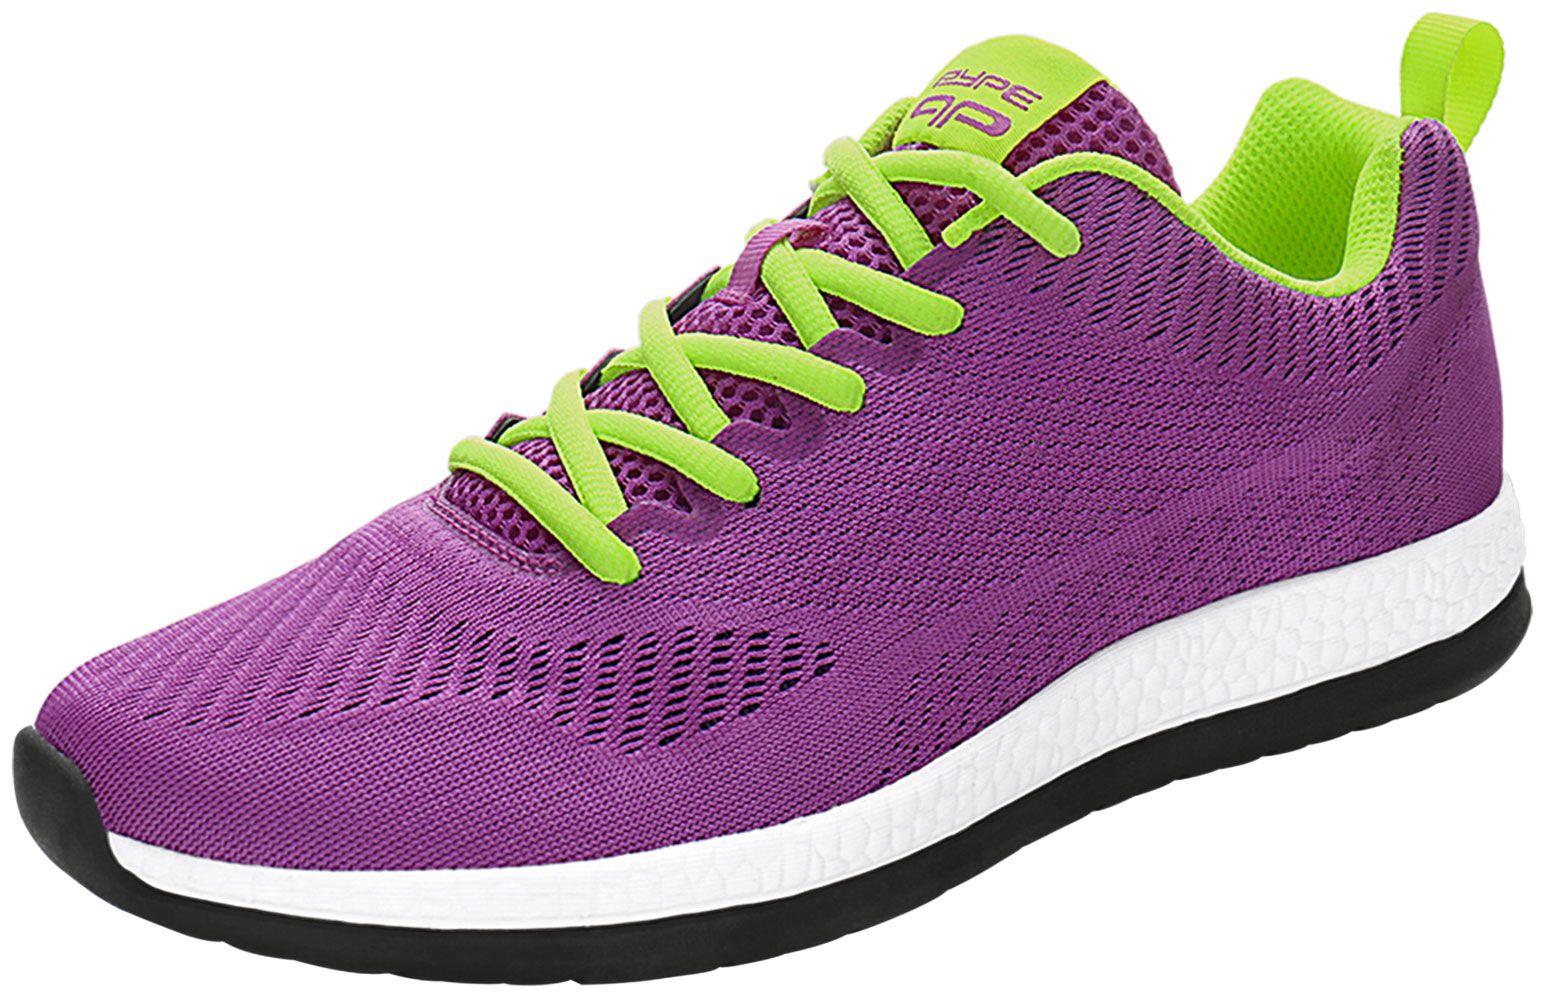 PYPE Lady Mesh Contrast Color Round Toe Training Sneakers Purple US 8